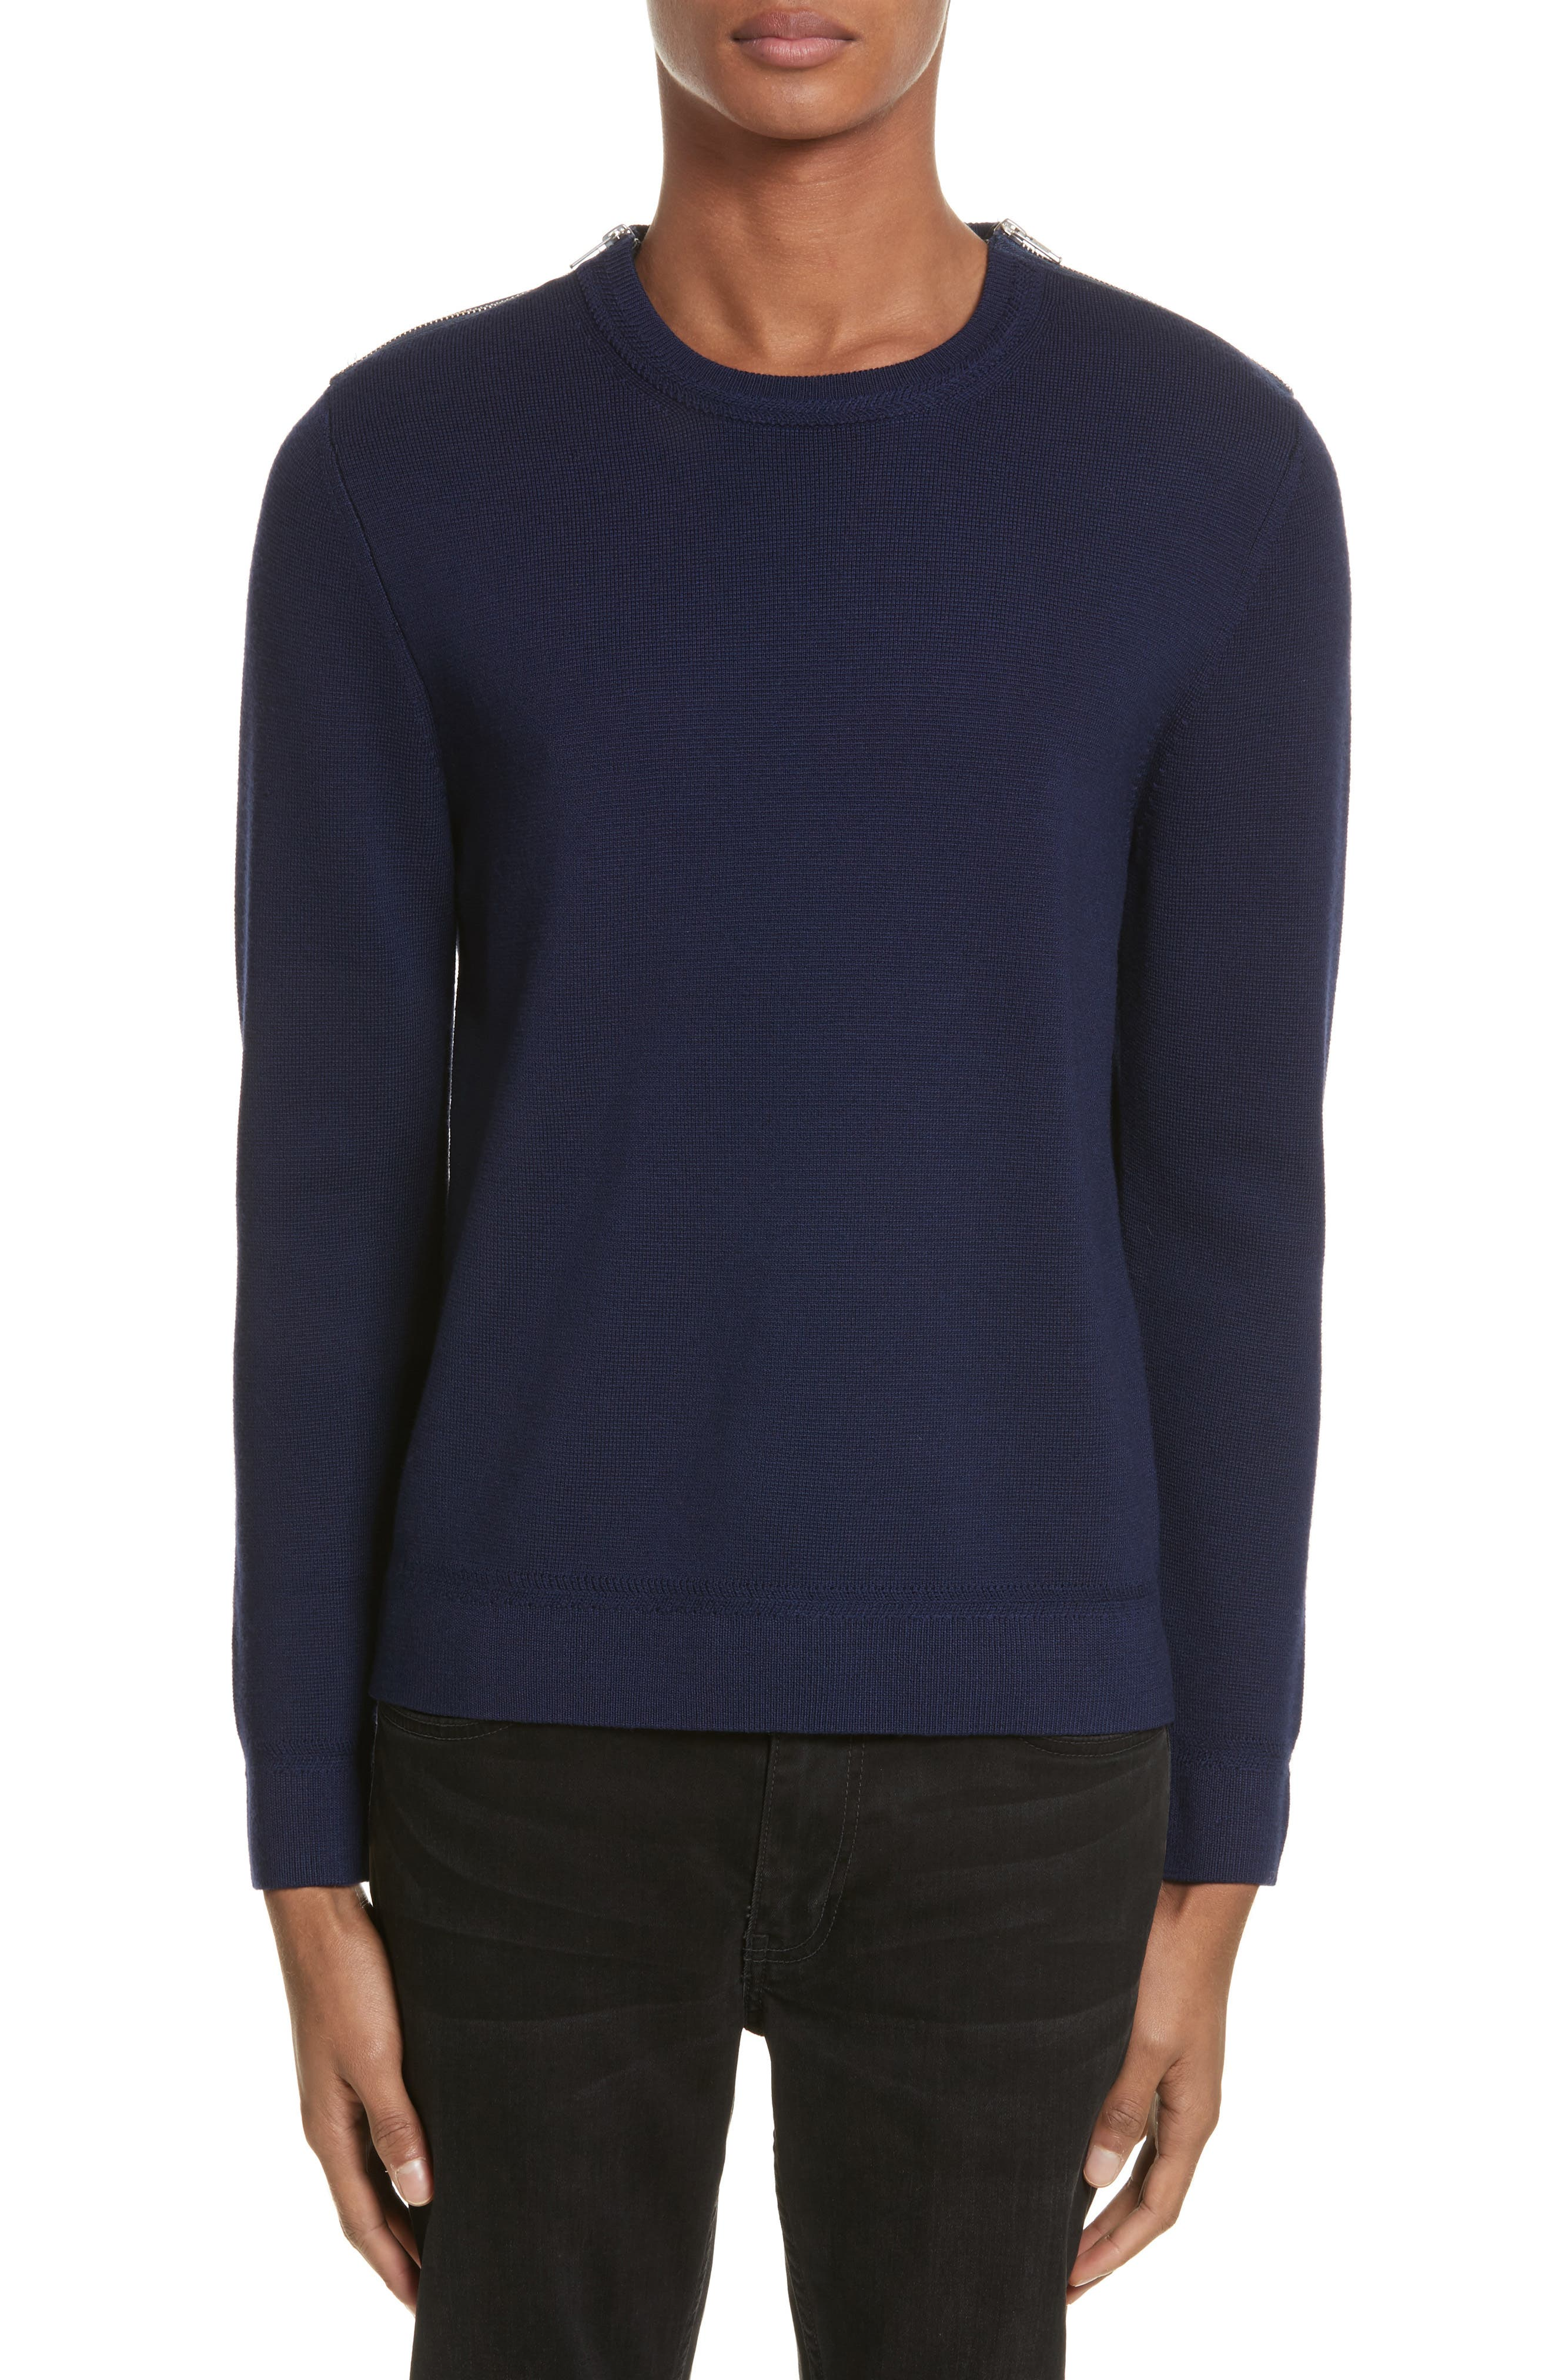 Merino Wool Blend Sweater with Shoulder Zip Trim,                             Main thumbnail 1, color,                             400